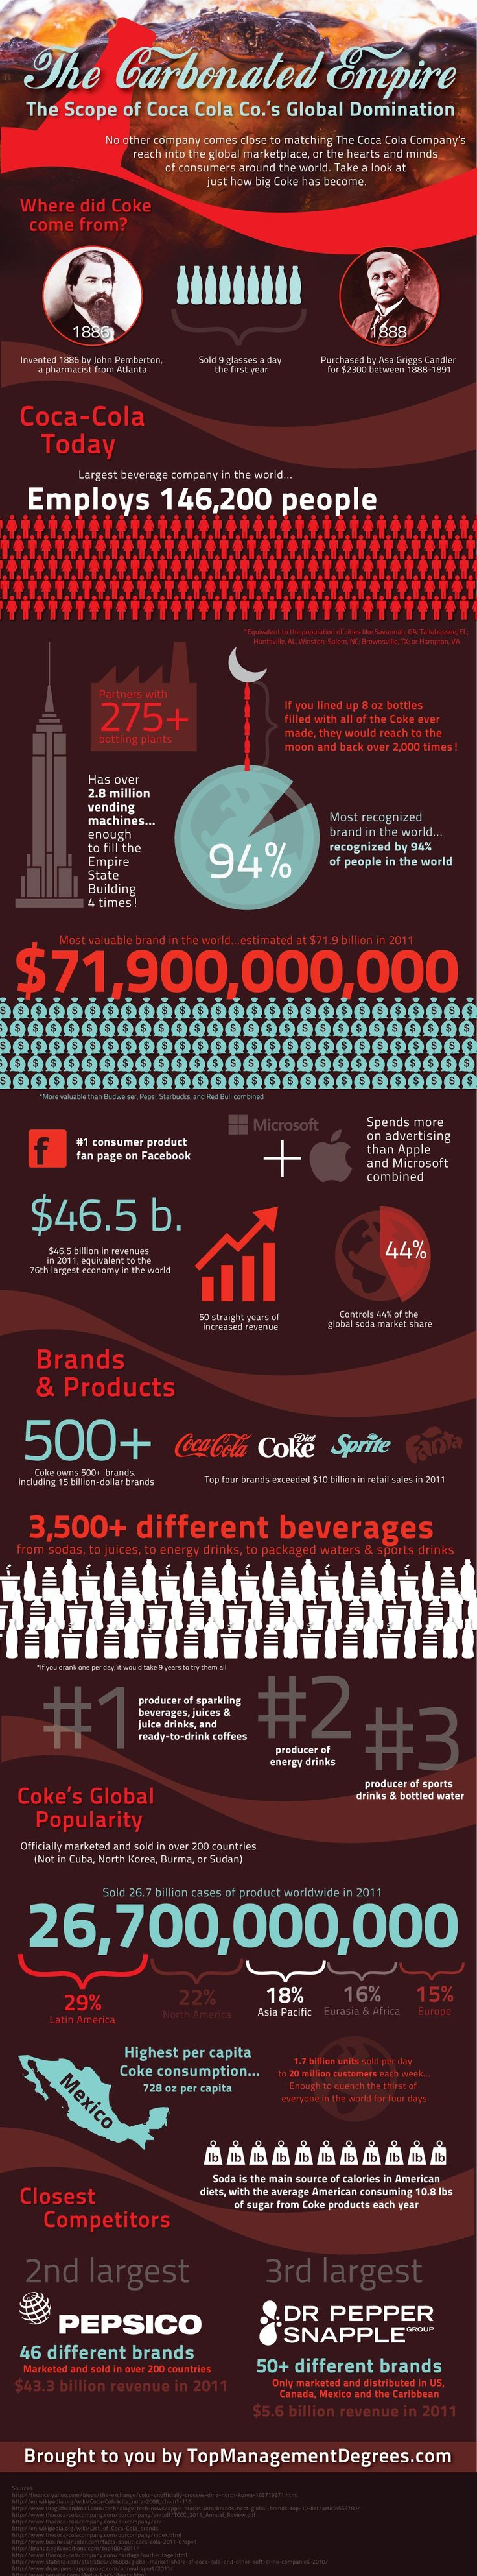 The Carbonated Empire: Coca Cola Co's Global Domination  Embed this infographic on your site!  Source: TopManagementDegrees.com      The Carbonated Empire: The Scope Coca Cola Co's Global Domination